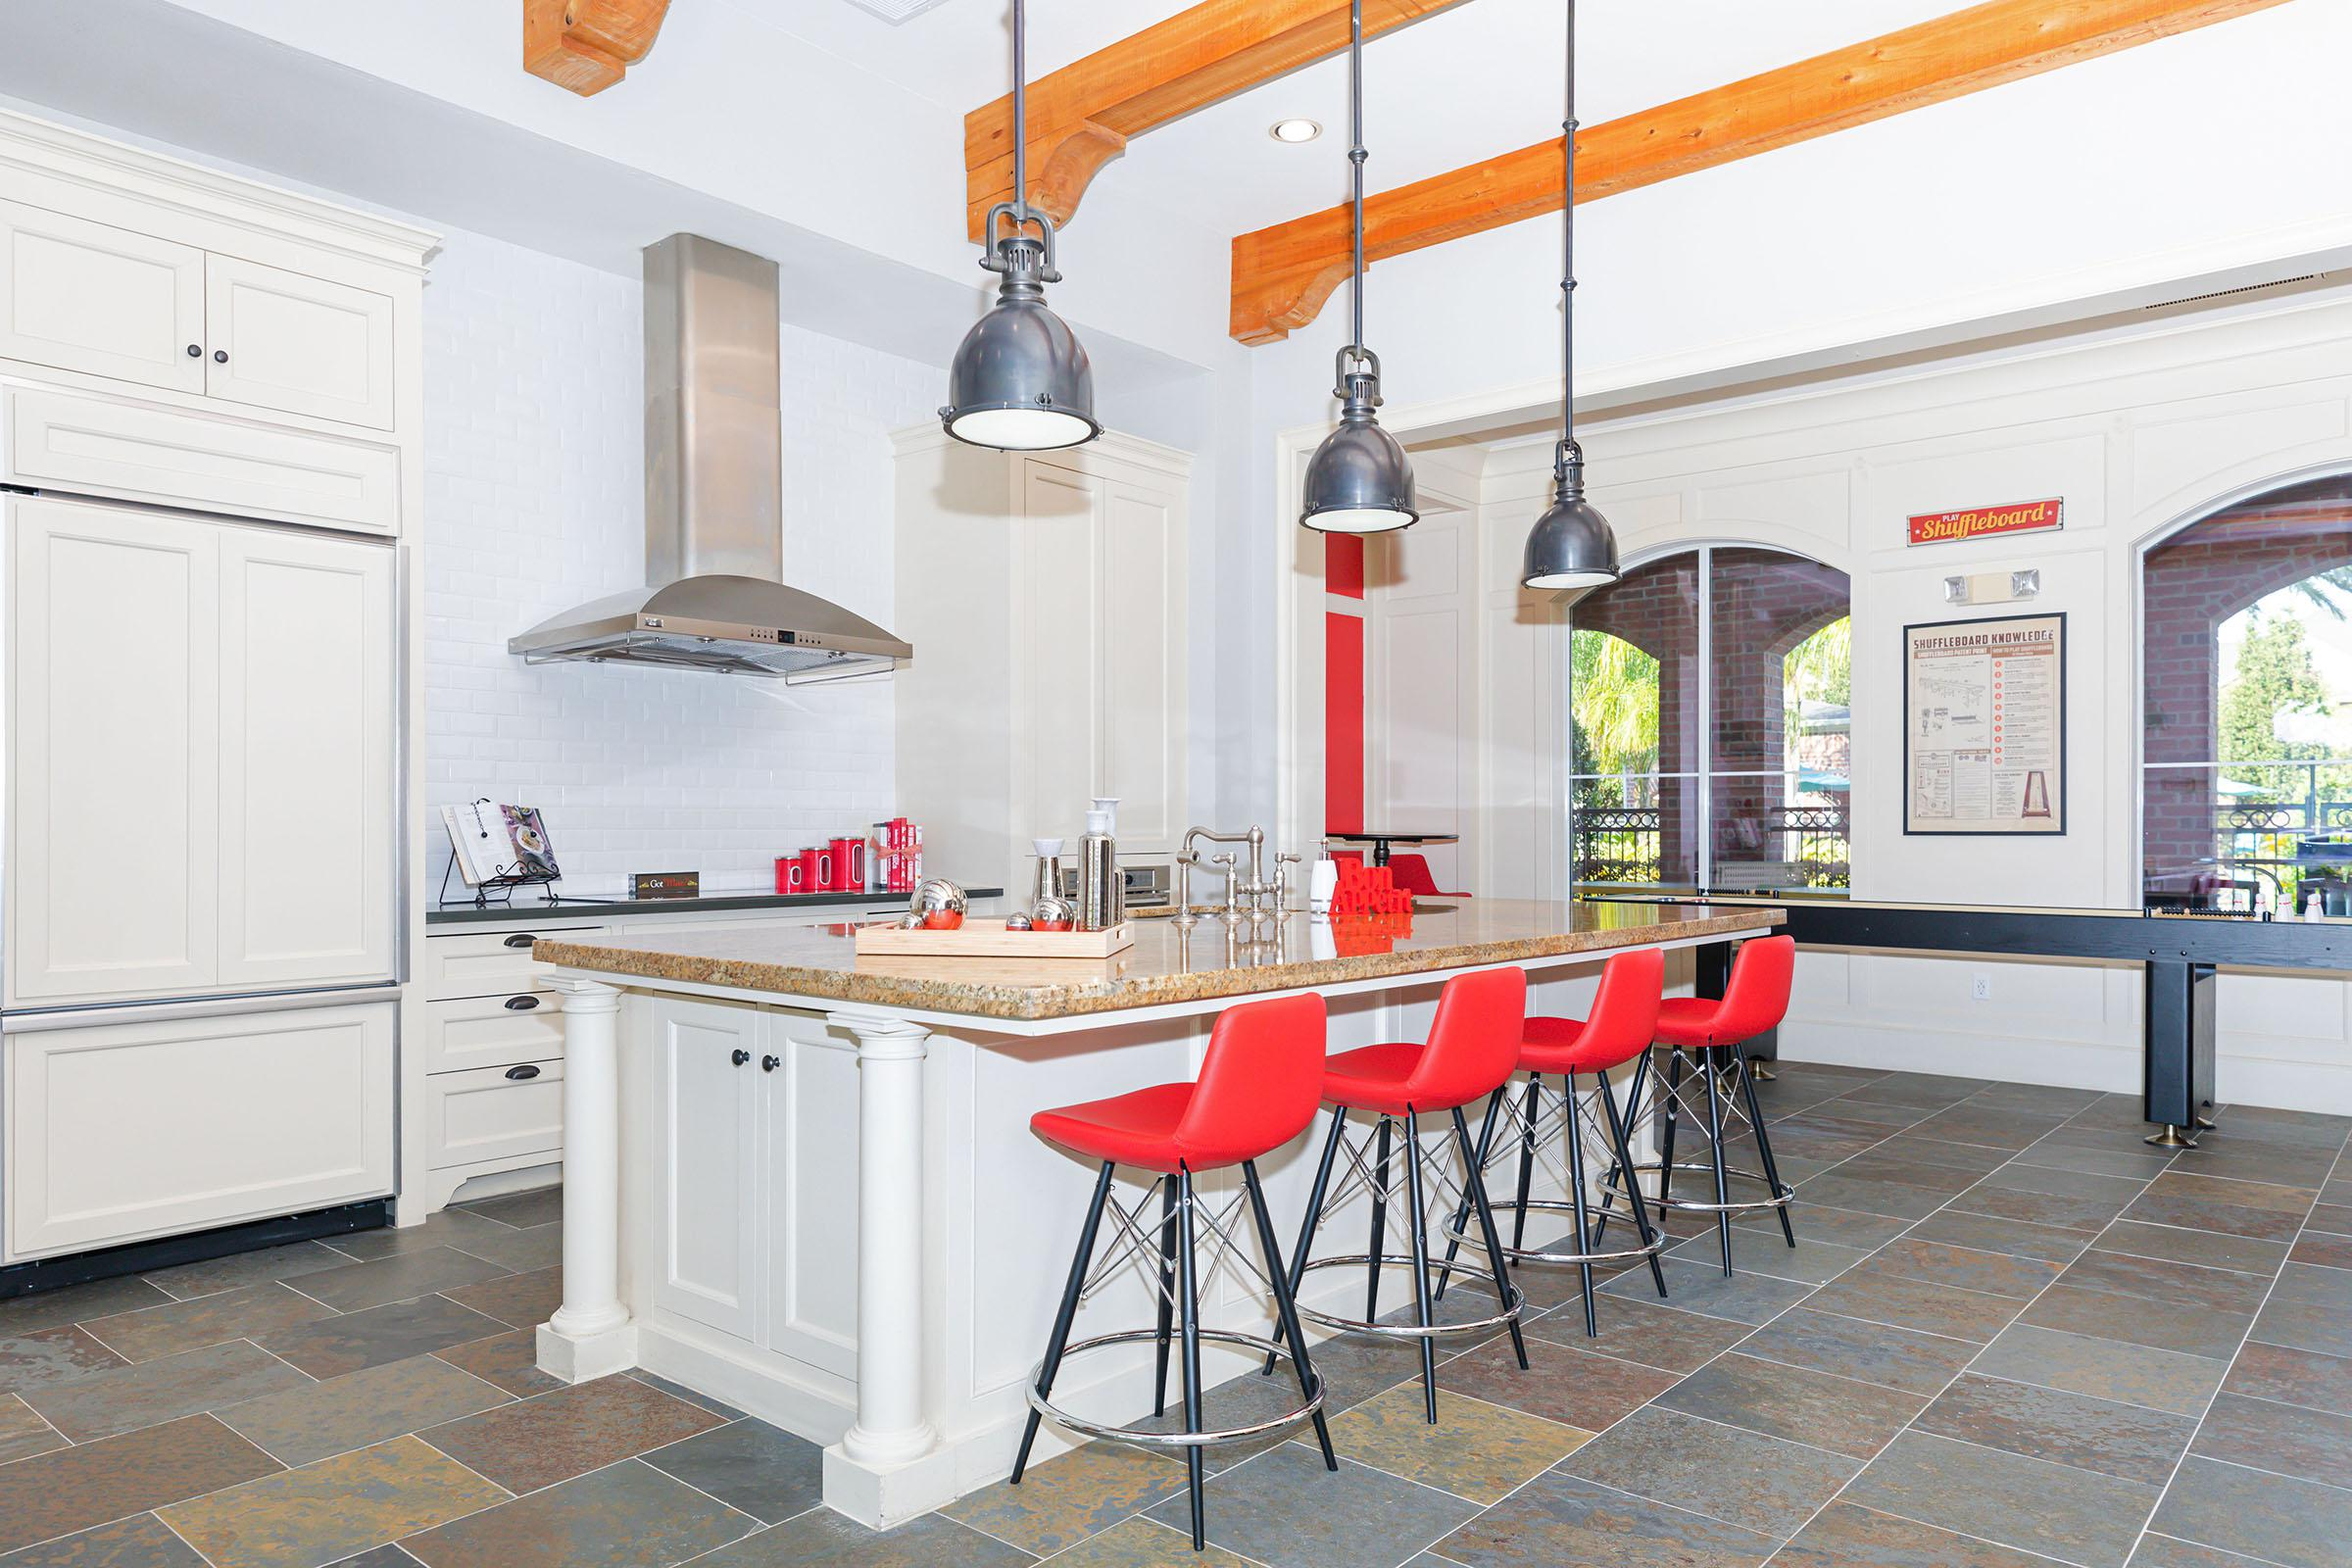 a kitchen with a table and chairs